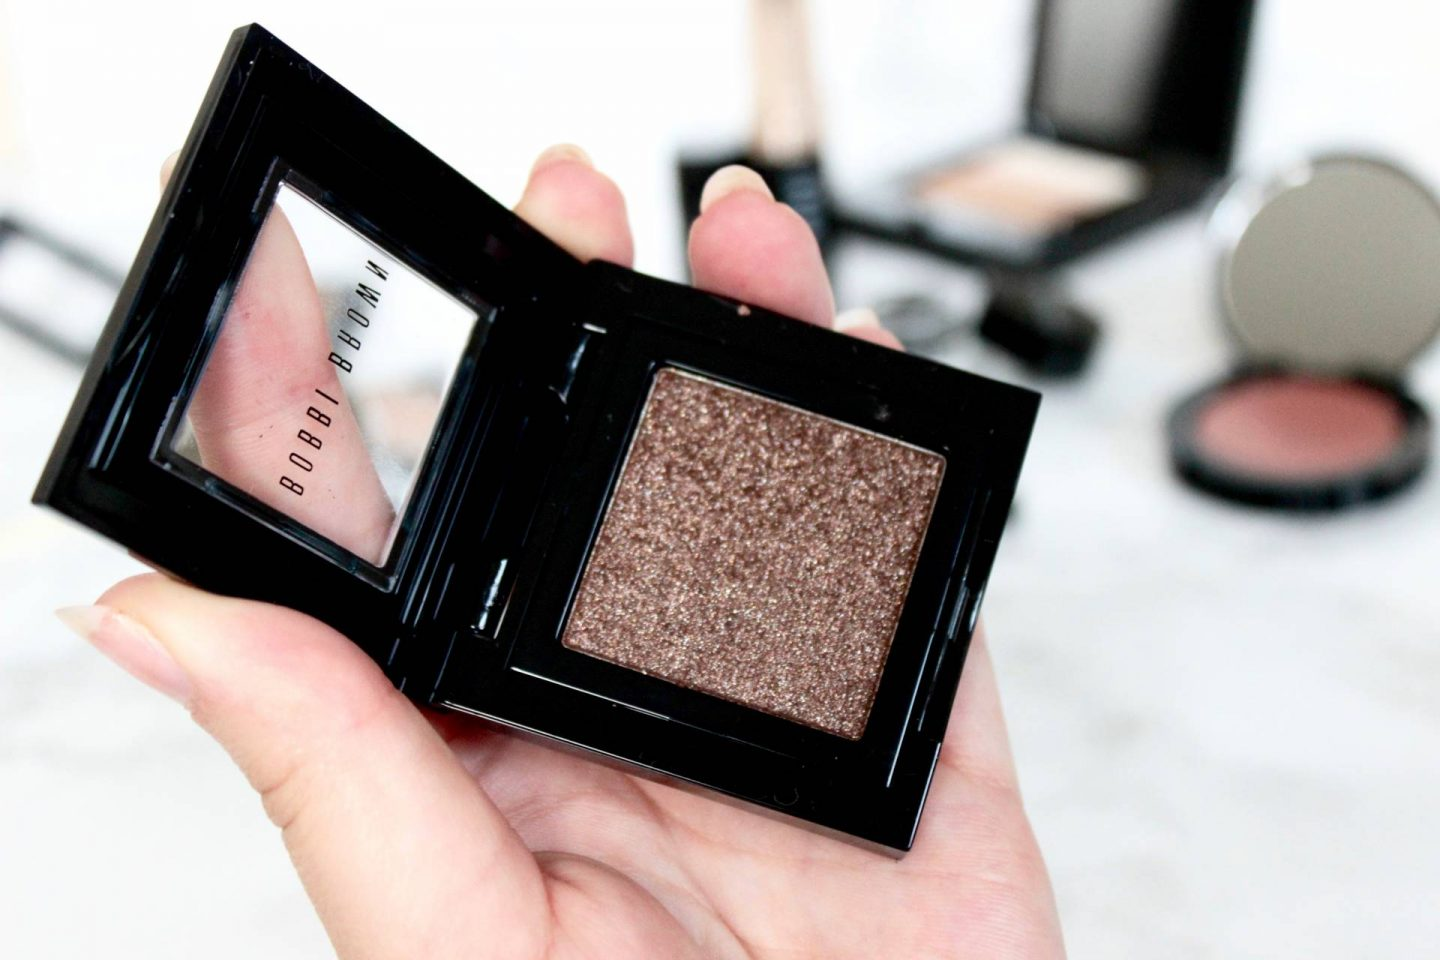 Bobbi Brown Sparkle Eye Shadow in Allspice